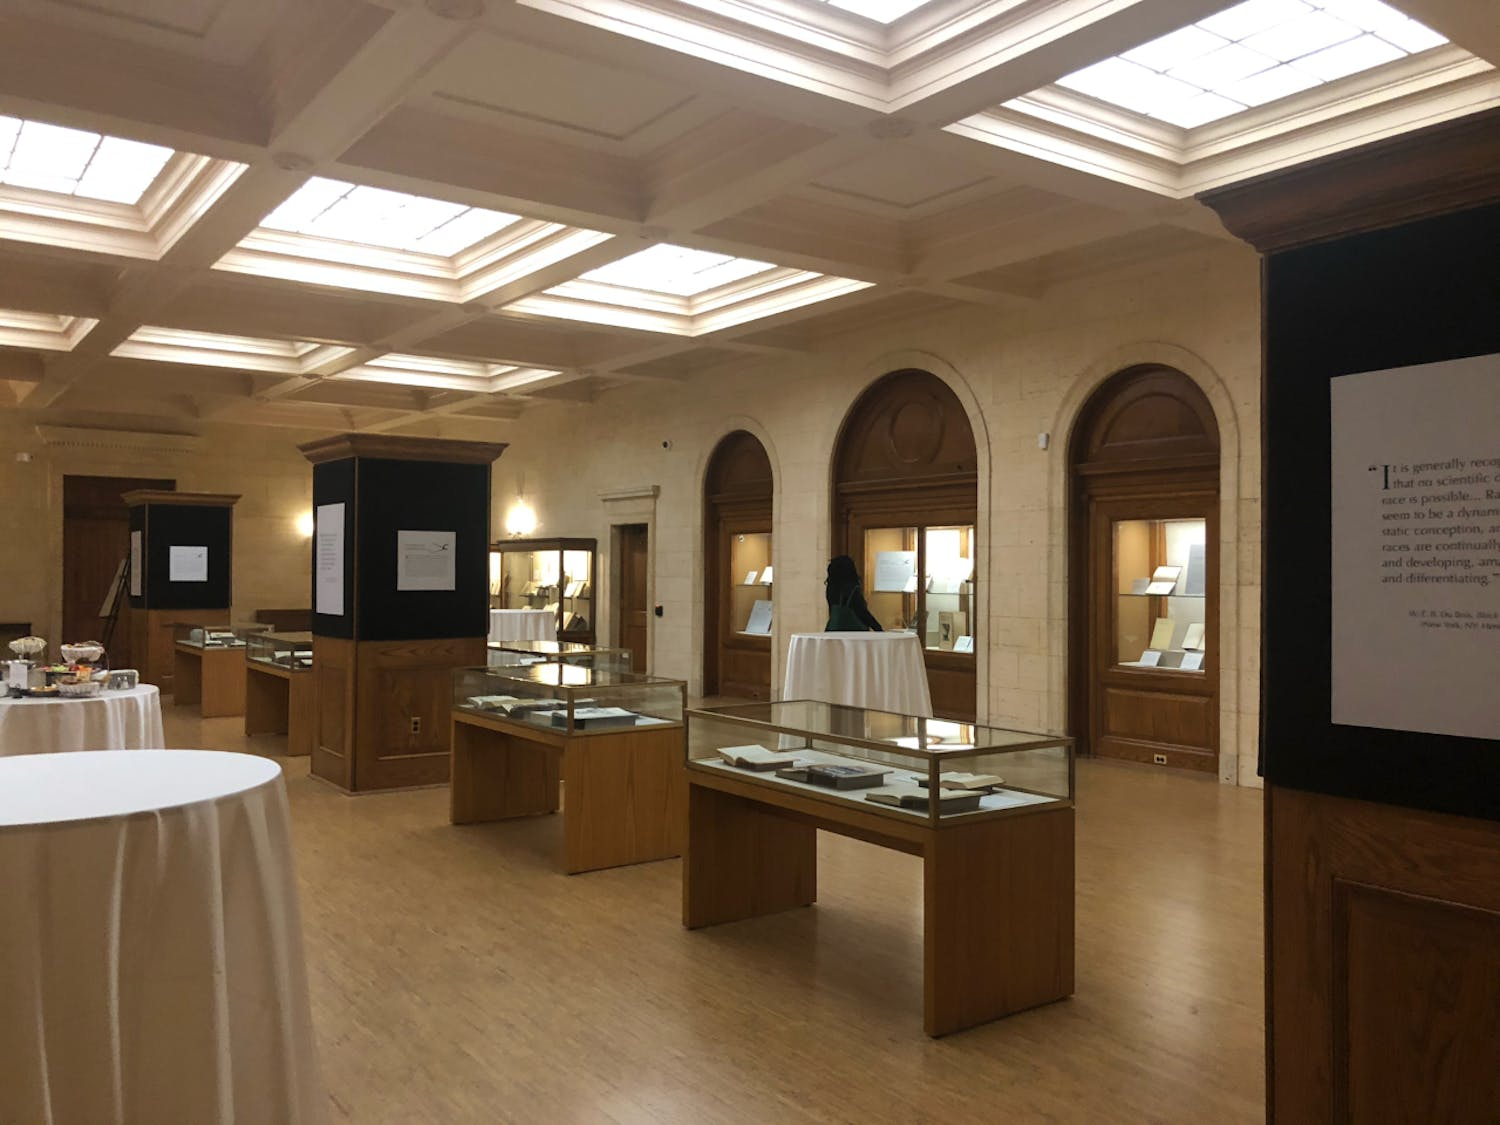 """UNC Libraries opened the exhibition, """"Race Deconstructed: Science and the Making of Difference"""" in Wilson Library on Feb. 13."""